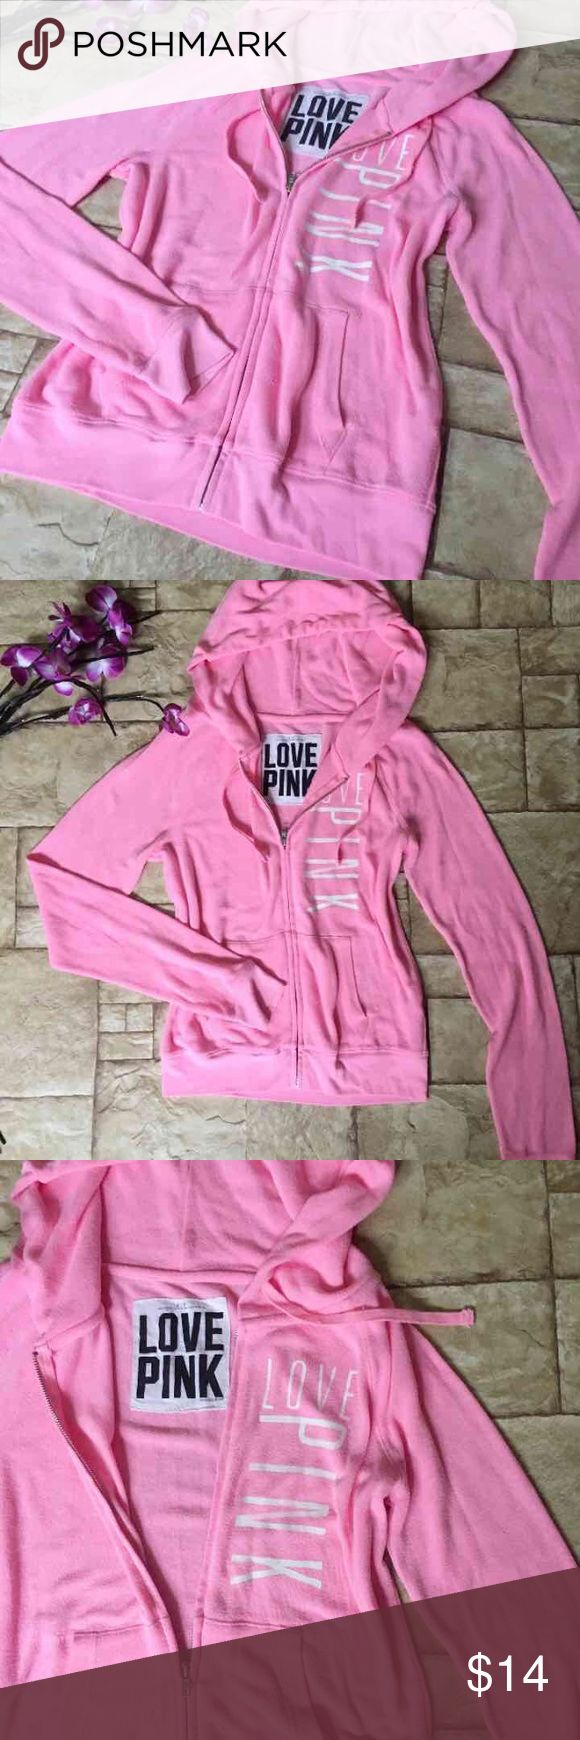 "Victoria's Secret PINK Jacket Absolutely BEAUTIFUL! Jacket Hoodie Zip Up from Victoria's Secret PINK ! Size small but oversized can fit medium. Very stretchy. (: Has ""Love Pink"" in front.   Minor light stains haven't tried taking them out. Pre used conditions. Does have factory distressed pockets .definite MUST have ❤  ❤️   Attention Scammers: I videotape packaging before shipping out; I will involve authorities if needed. Mail Fraud is a felony and will not be taken lightly.. so scam…"